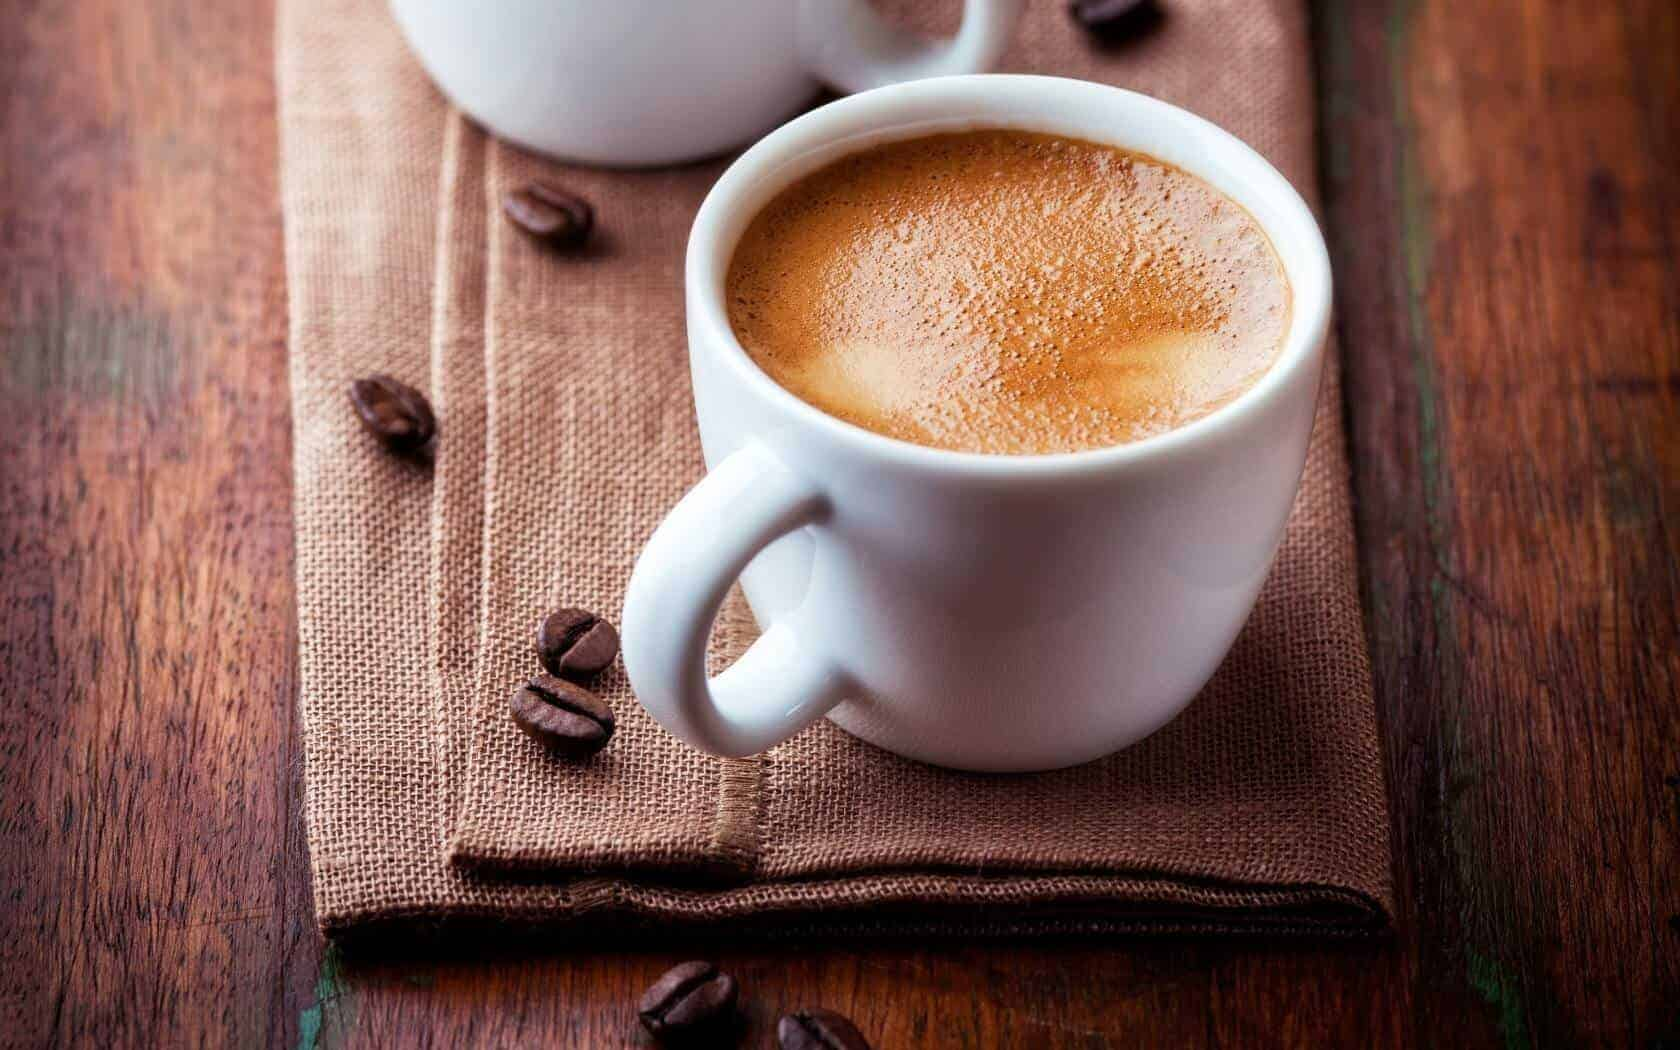 coffee-cup-beans-fabric-hd-wallpaper